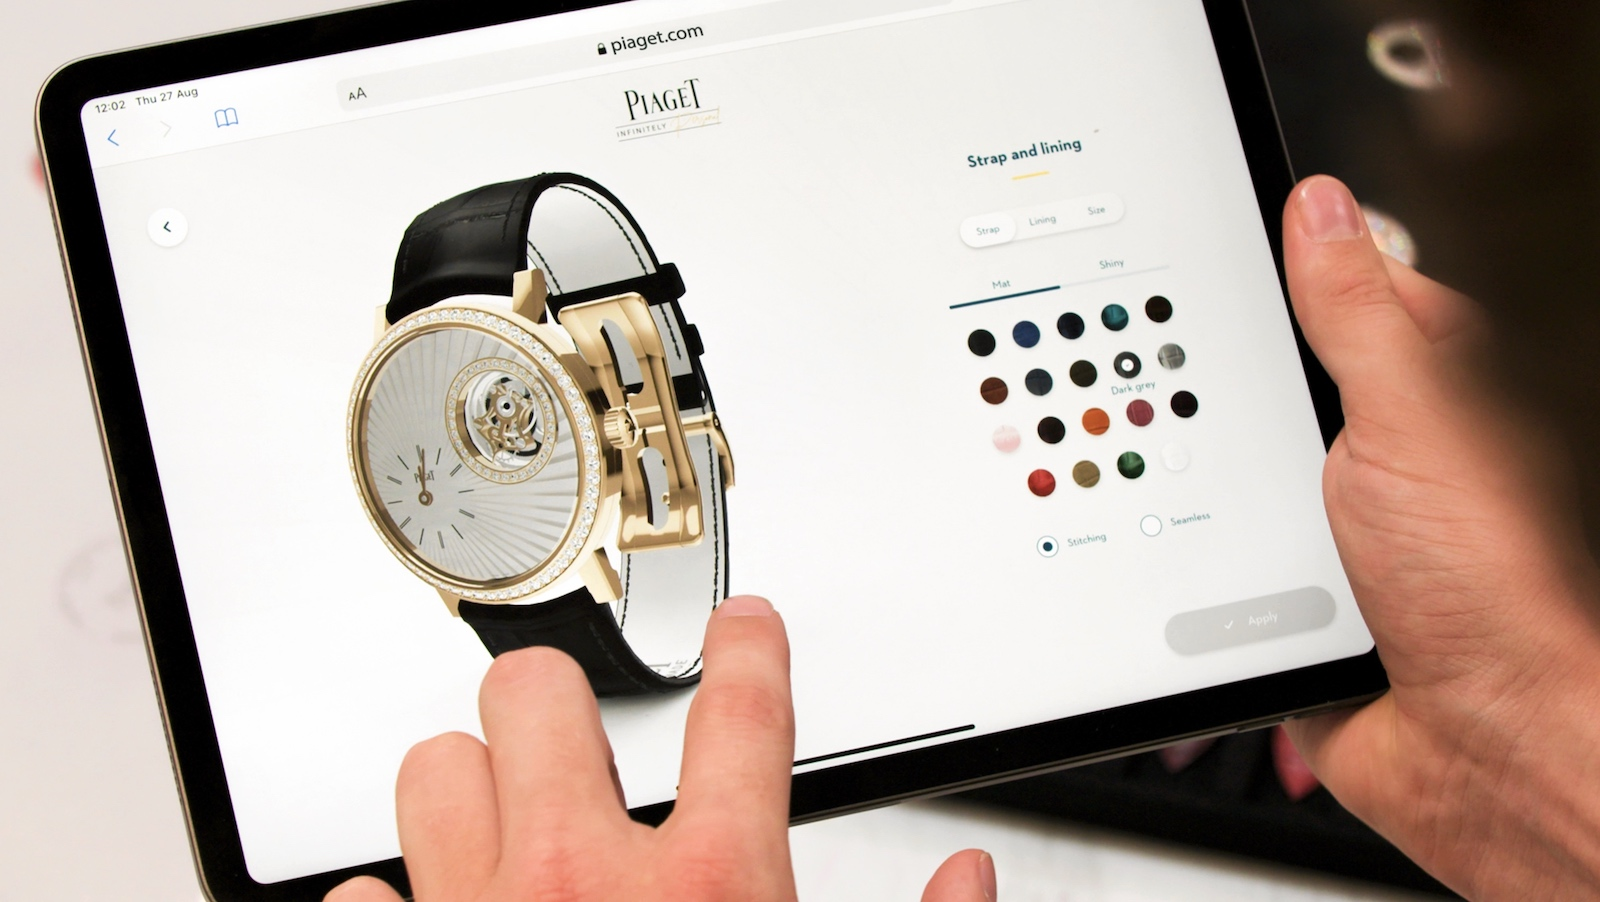 Piaget Infinitely Personal - tablet